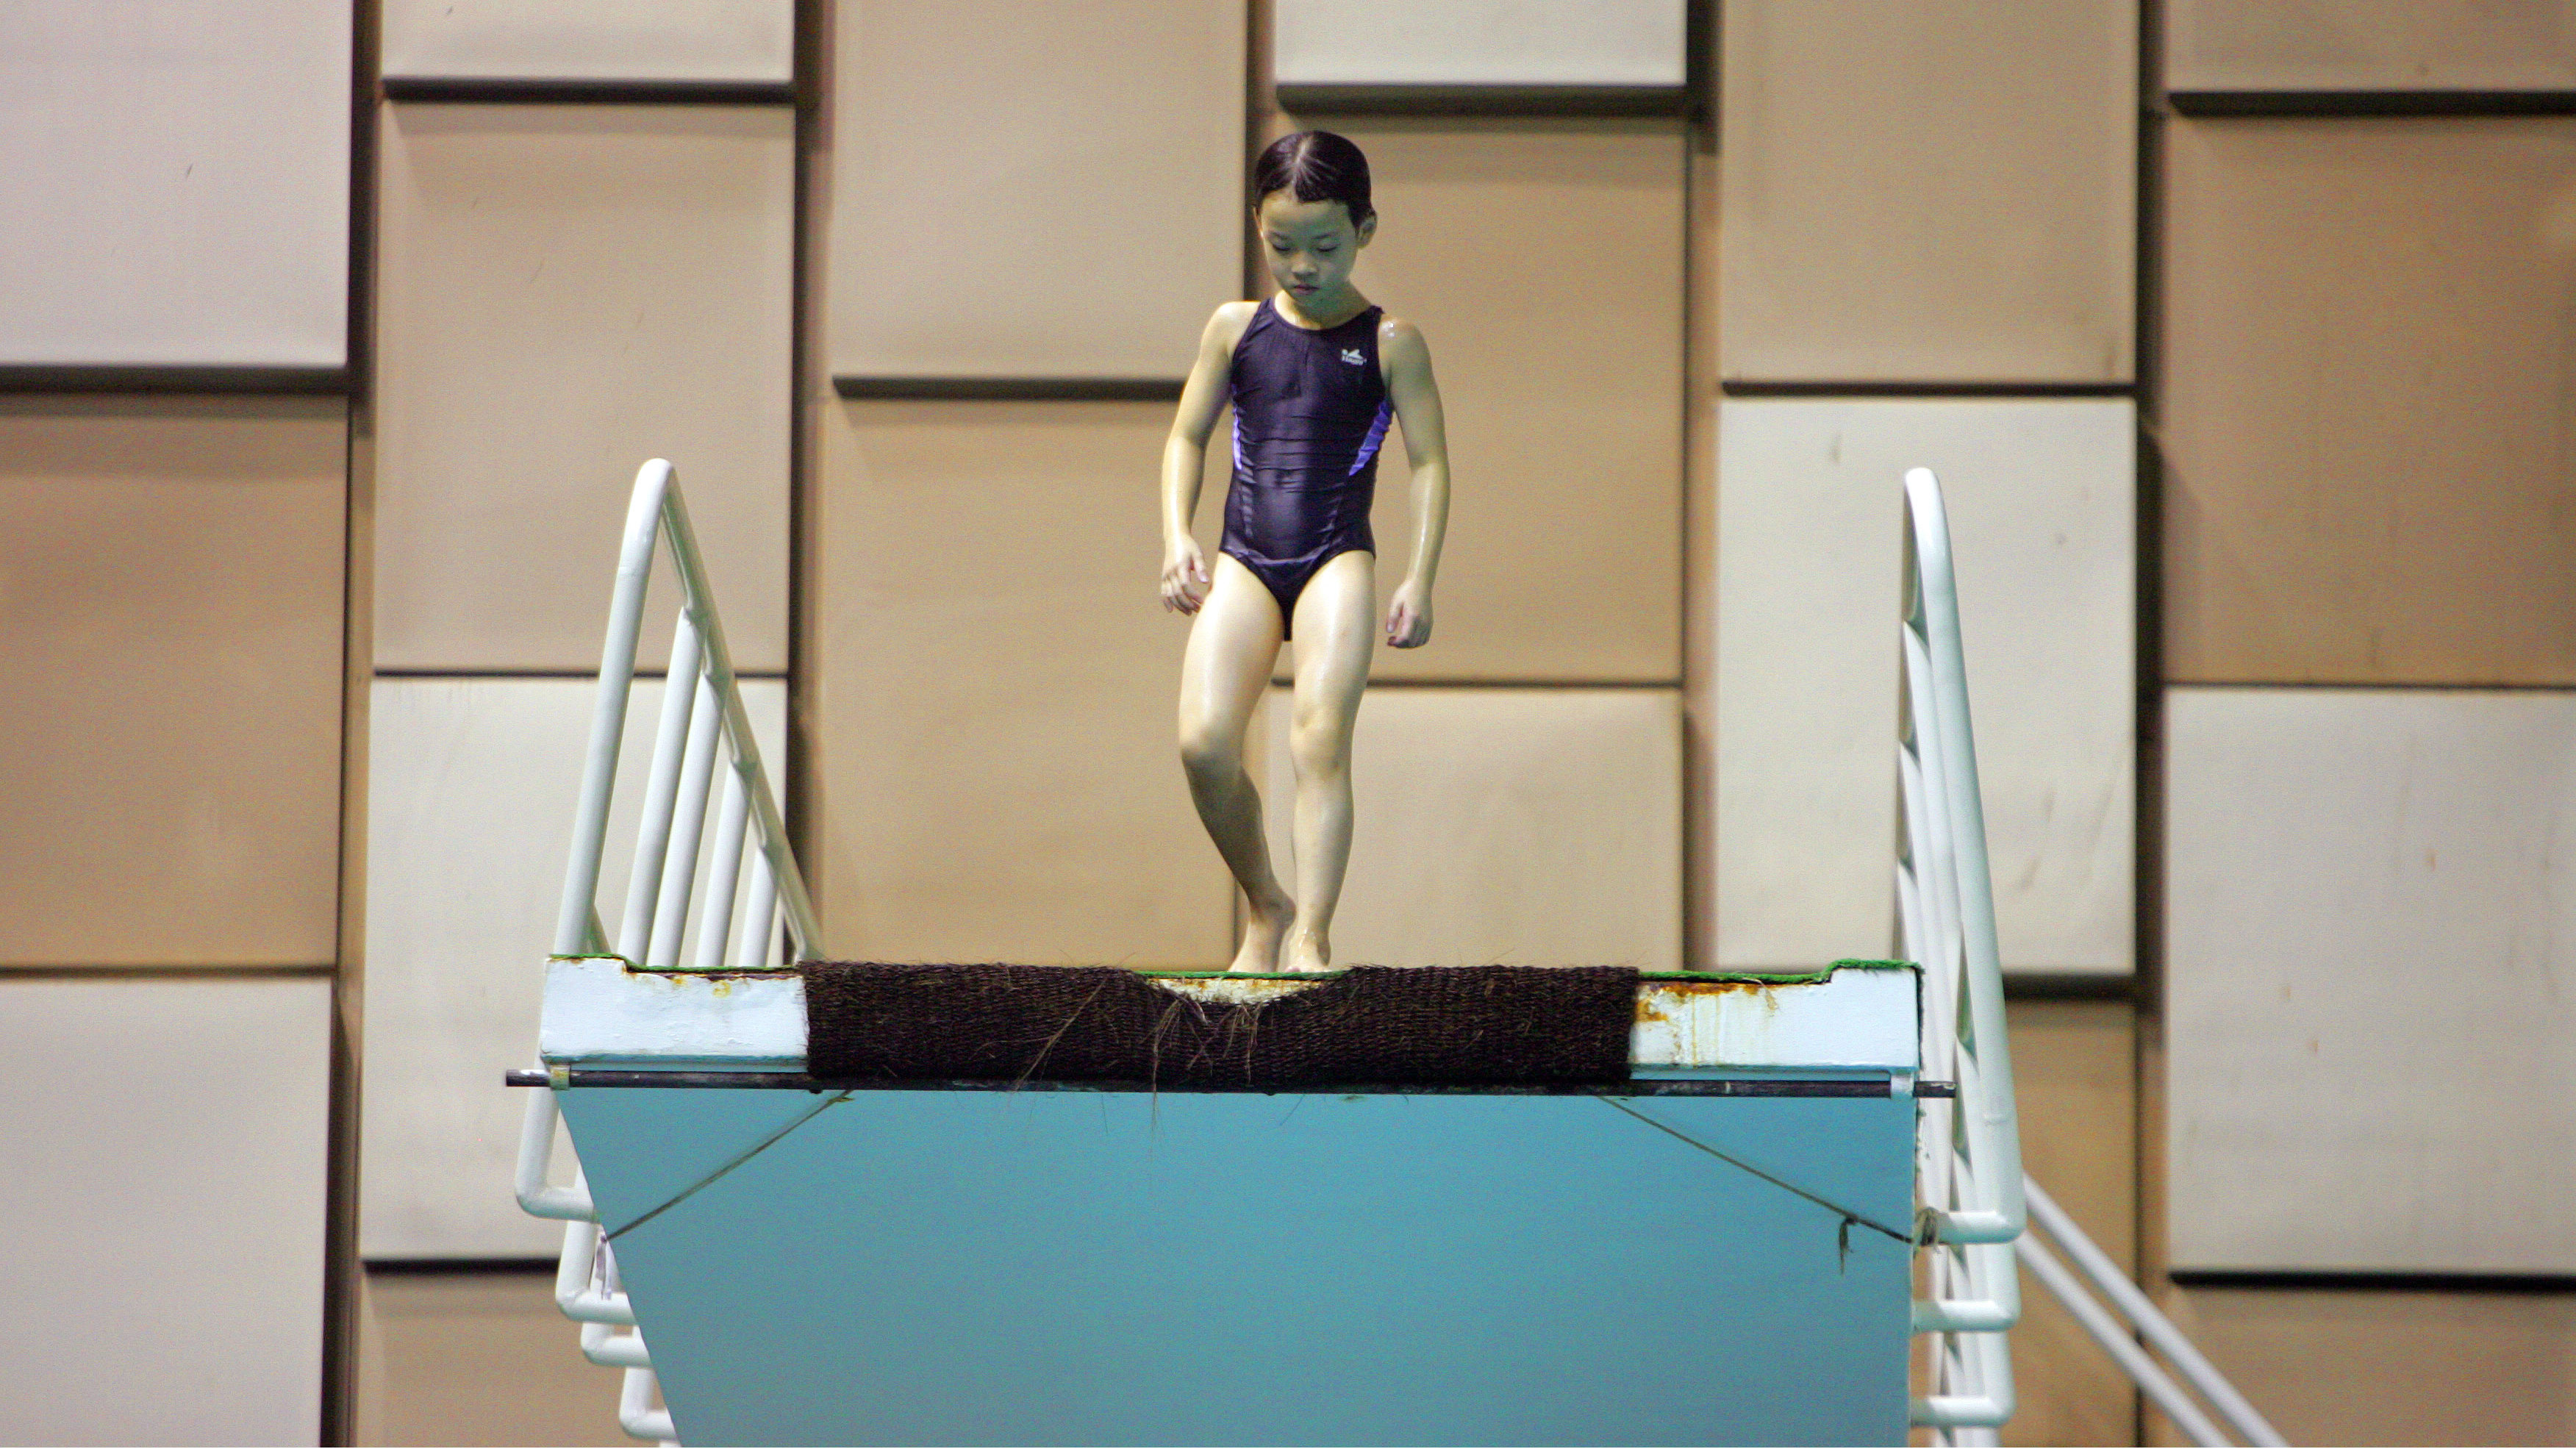 Girl waits at platform to dive into swimming pool at athlete training school in Shanghai